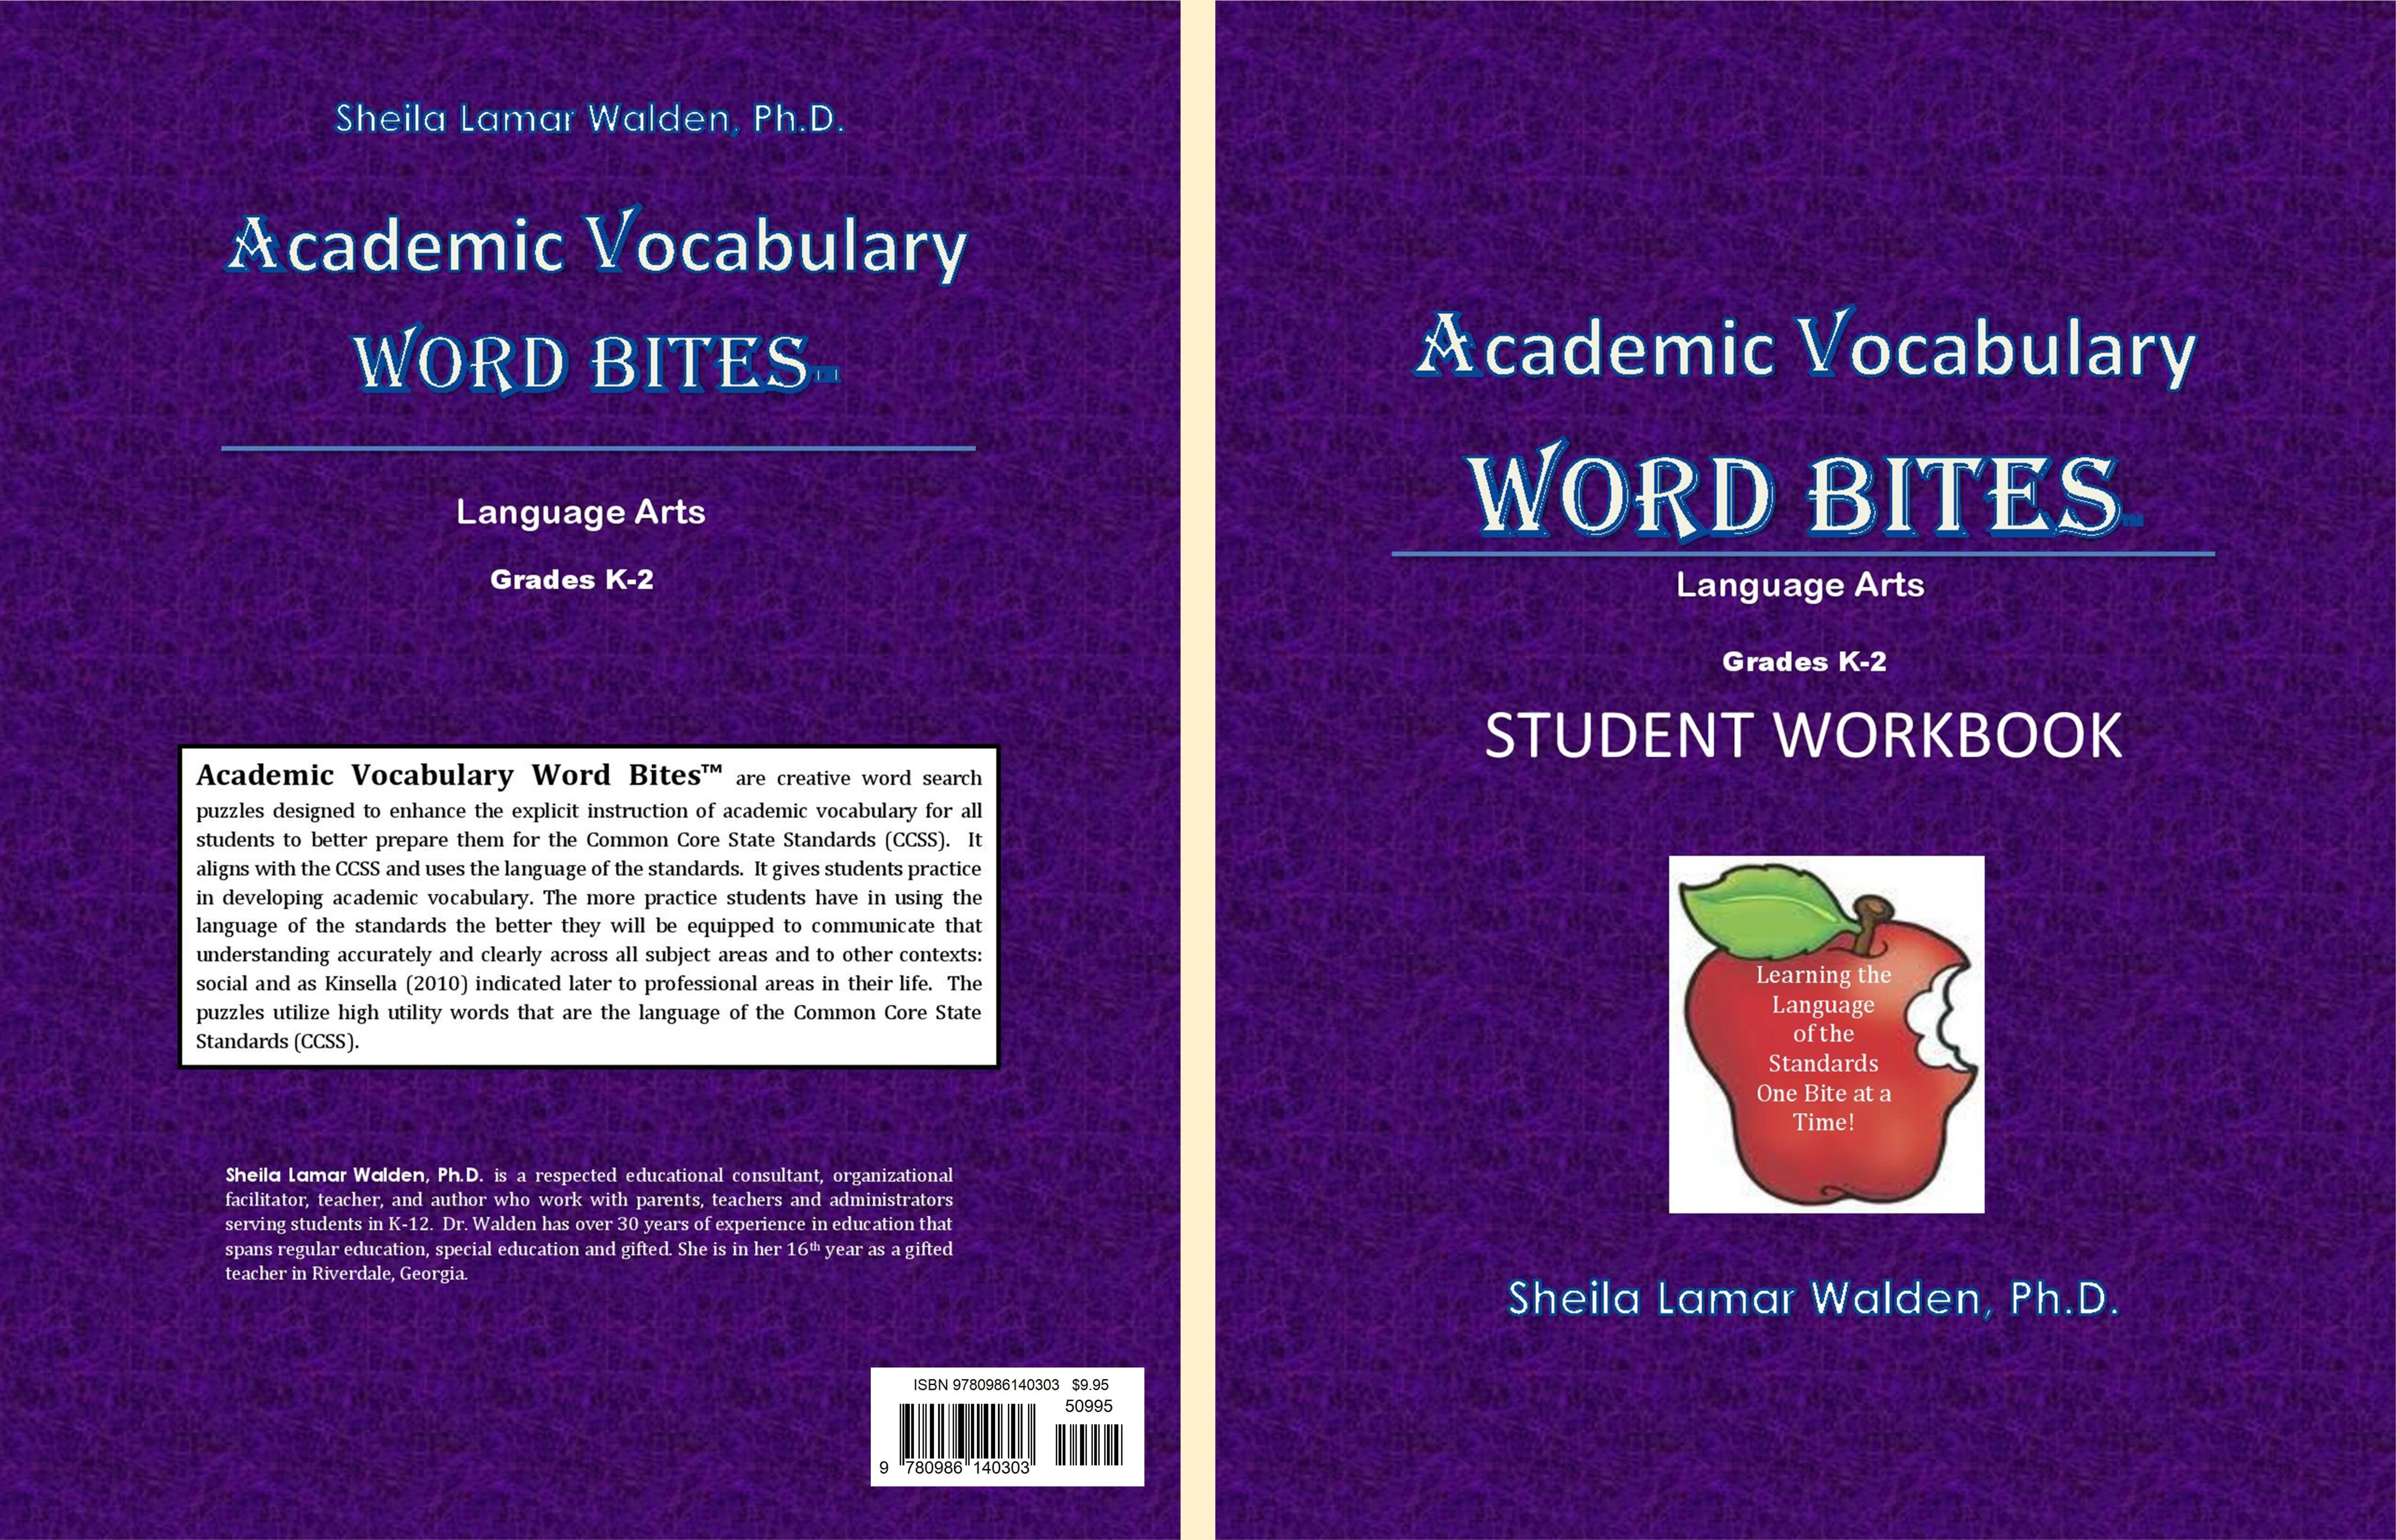 Academic Vocabulary Word Bites (K-2) Student Workbook cover image